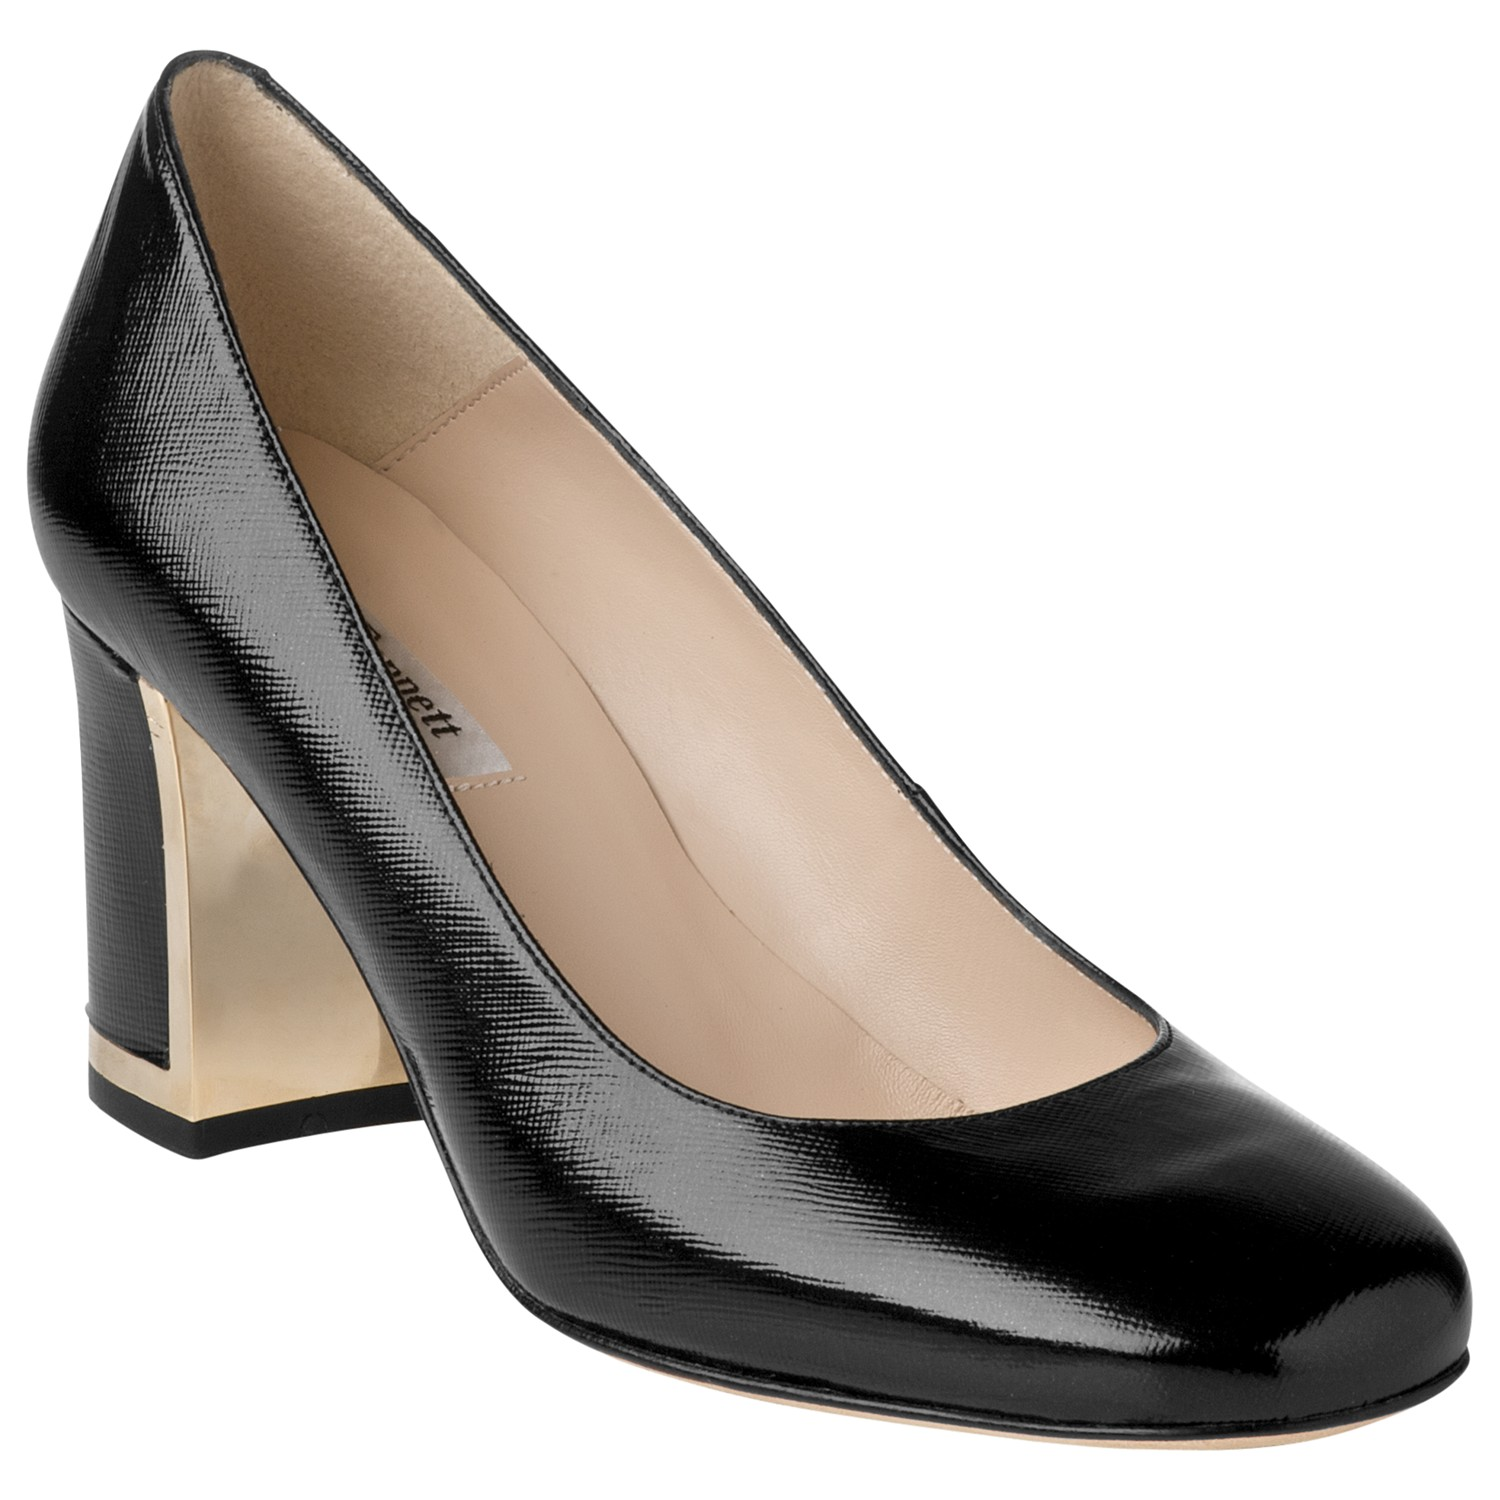 7a93bfab4a50 L.K.Bennett Tia Court Shoes in Black - Lyst